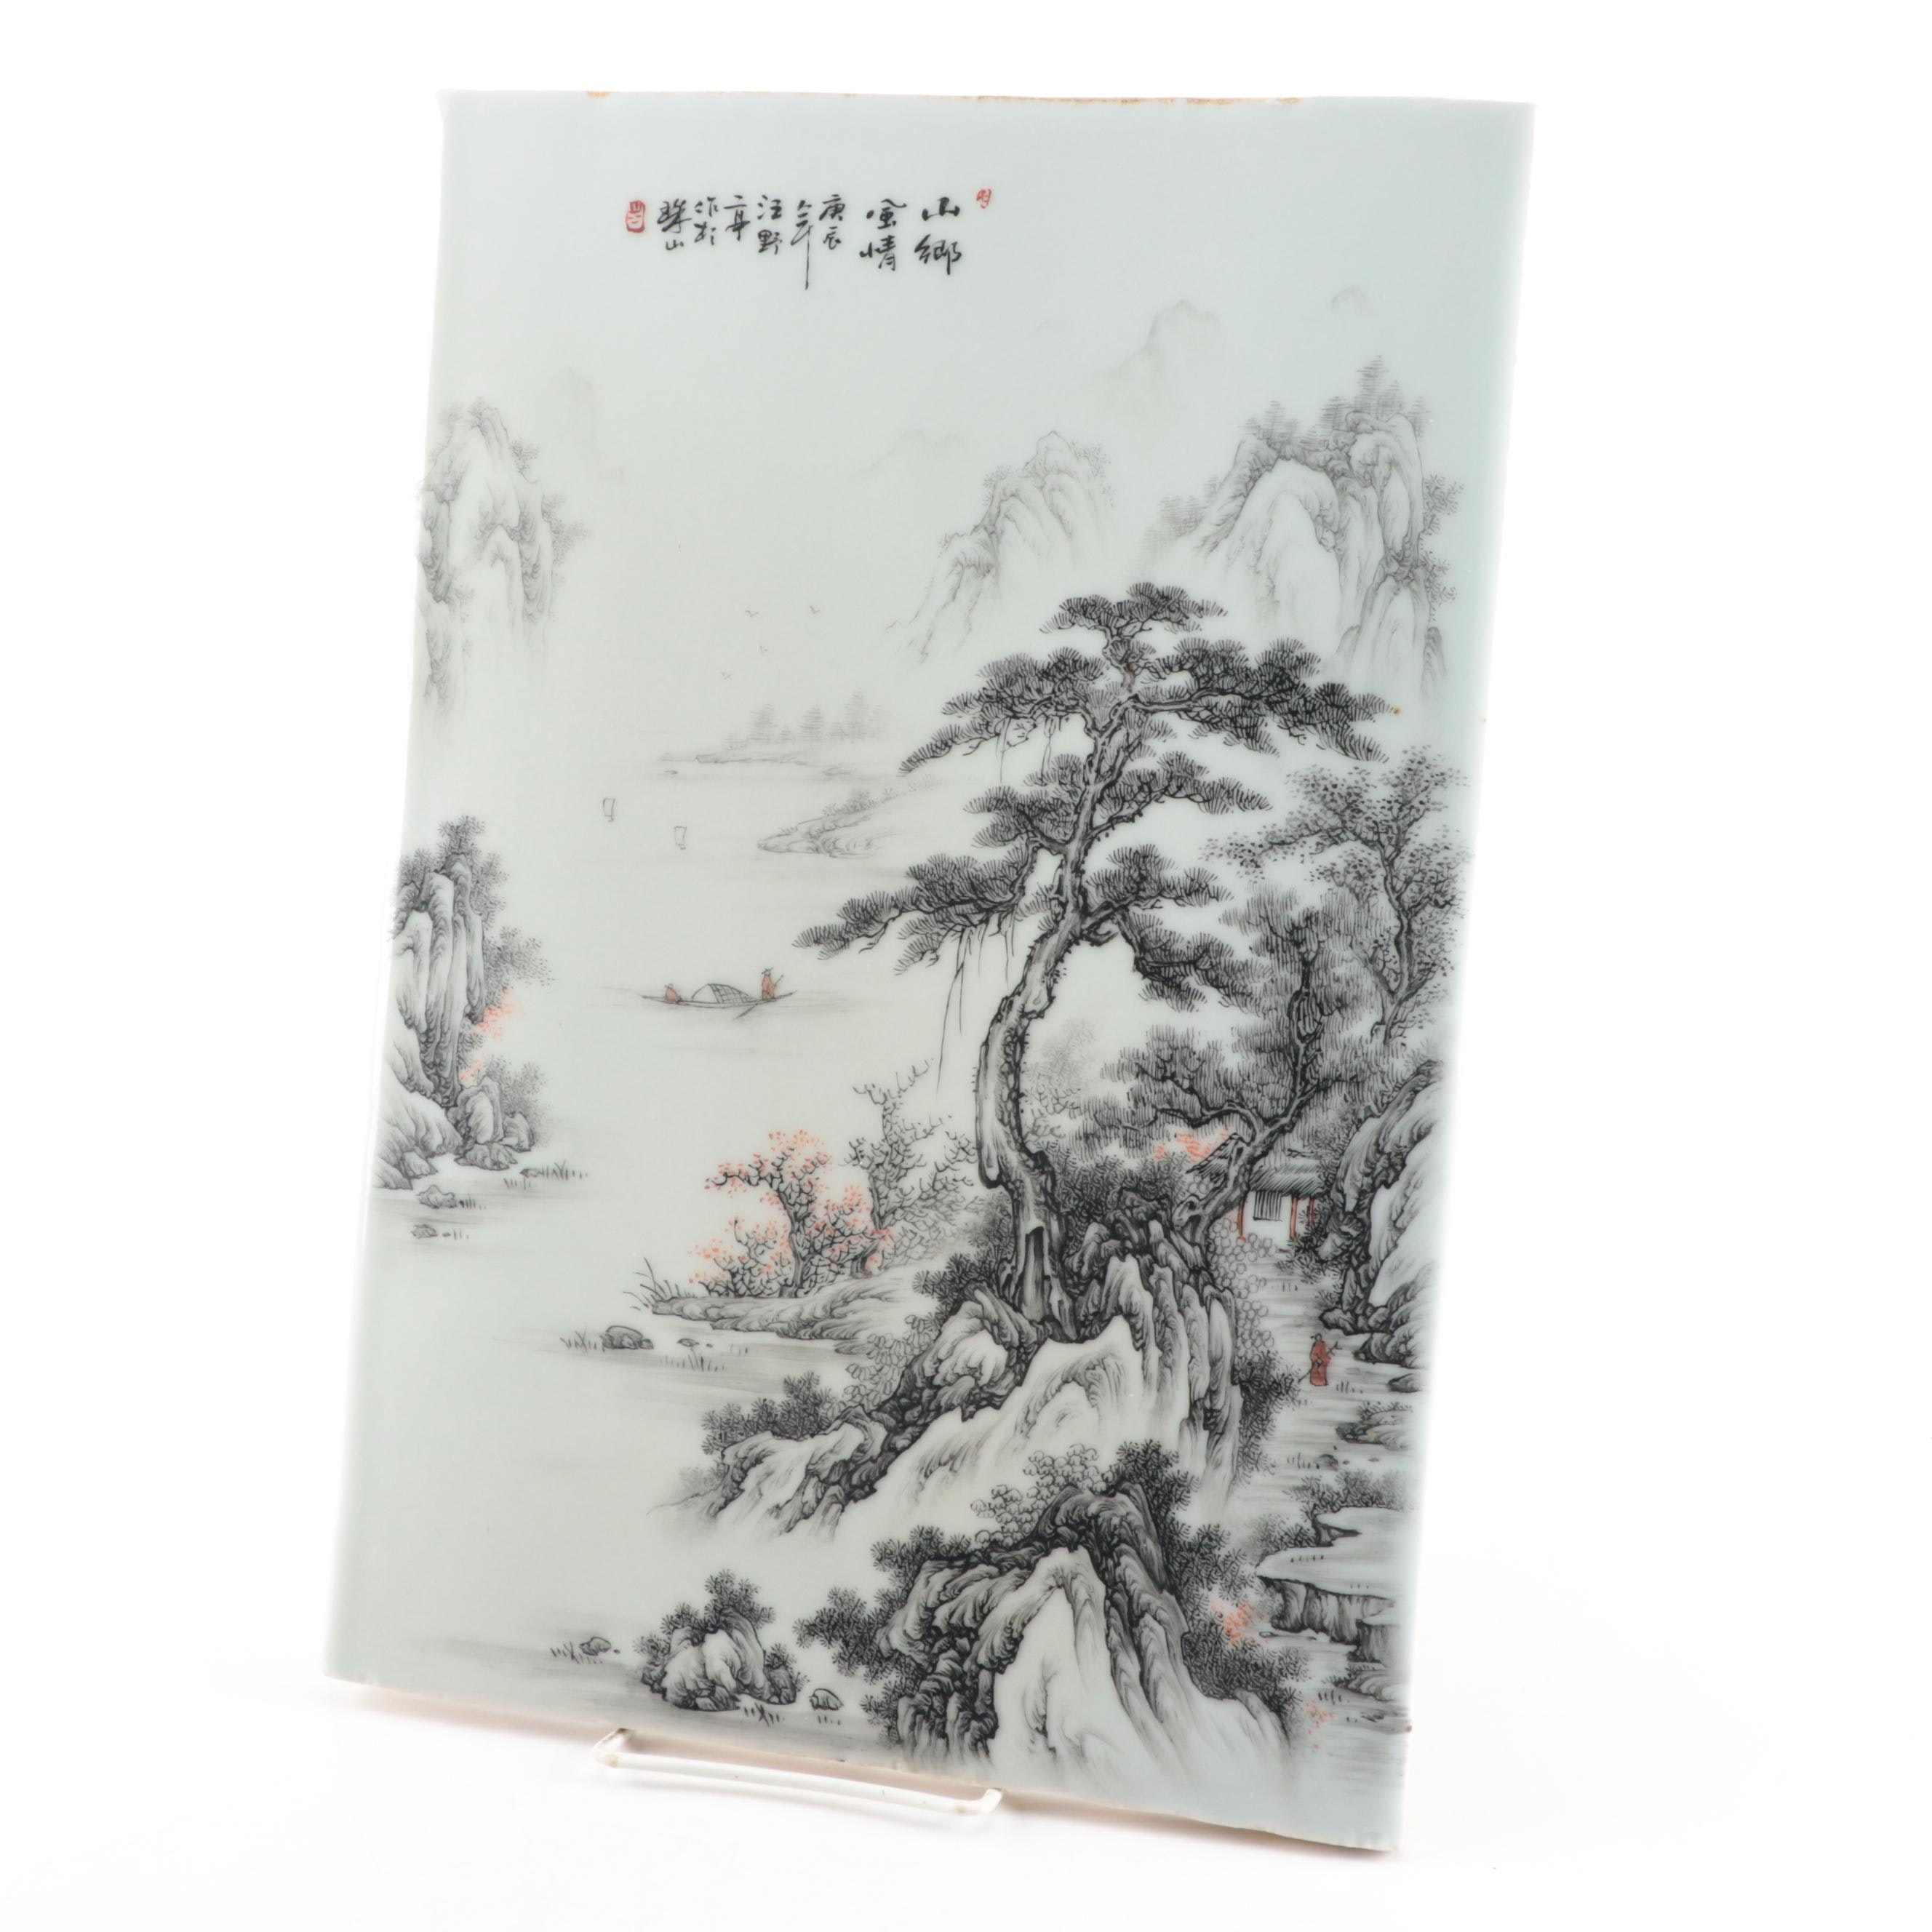 Chinese Hand-Painted Ceramic Tile